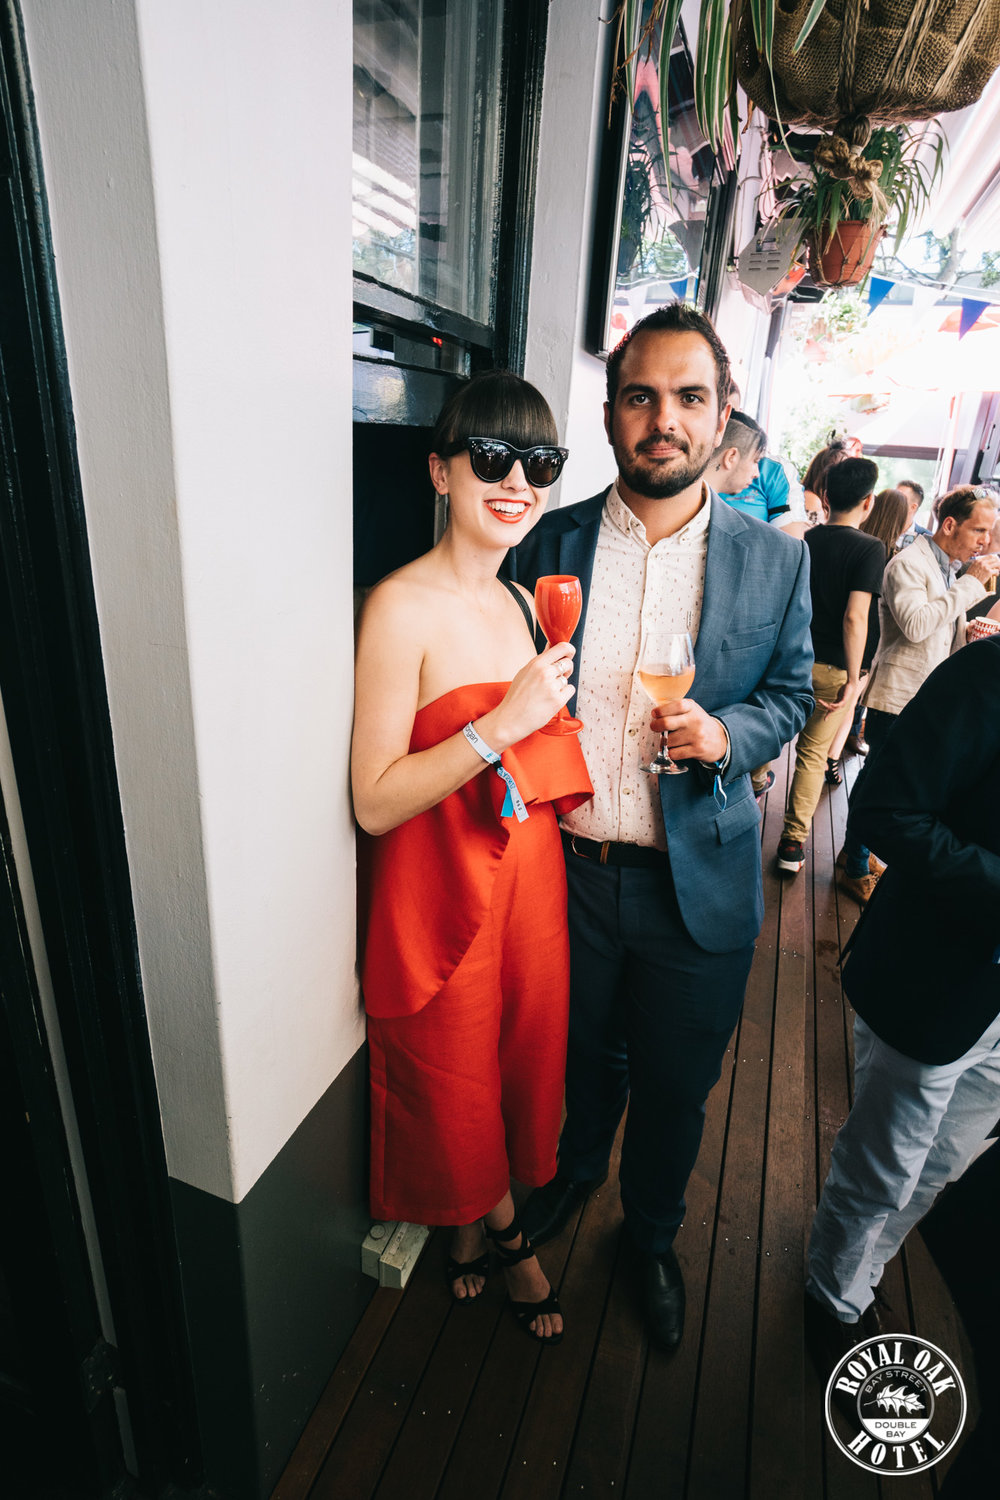 ROH.Melbourne.Cup.By.Aristo.Risi-014.jpg